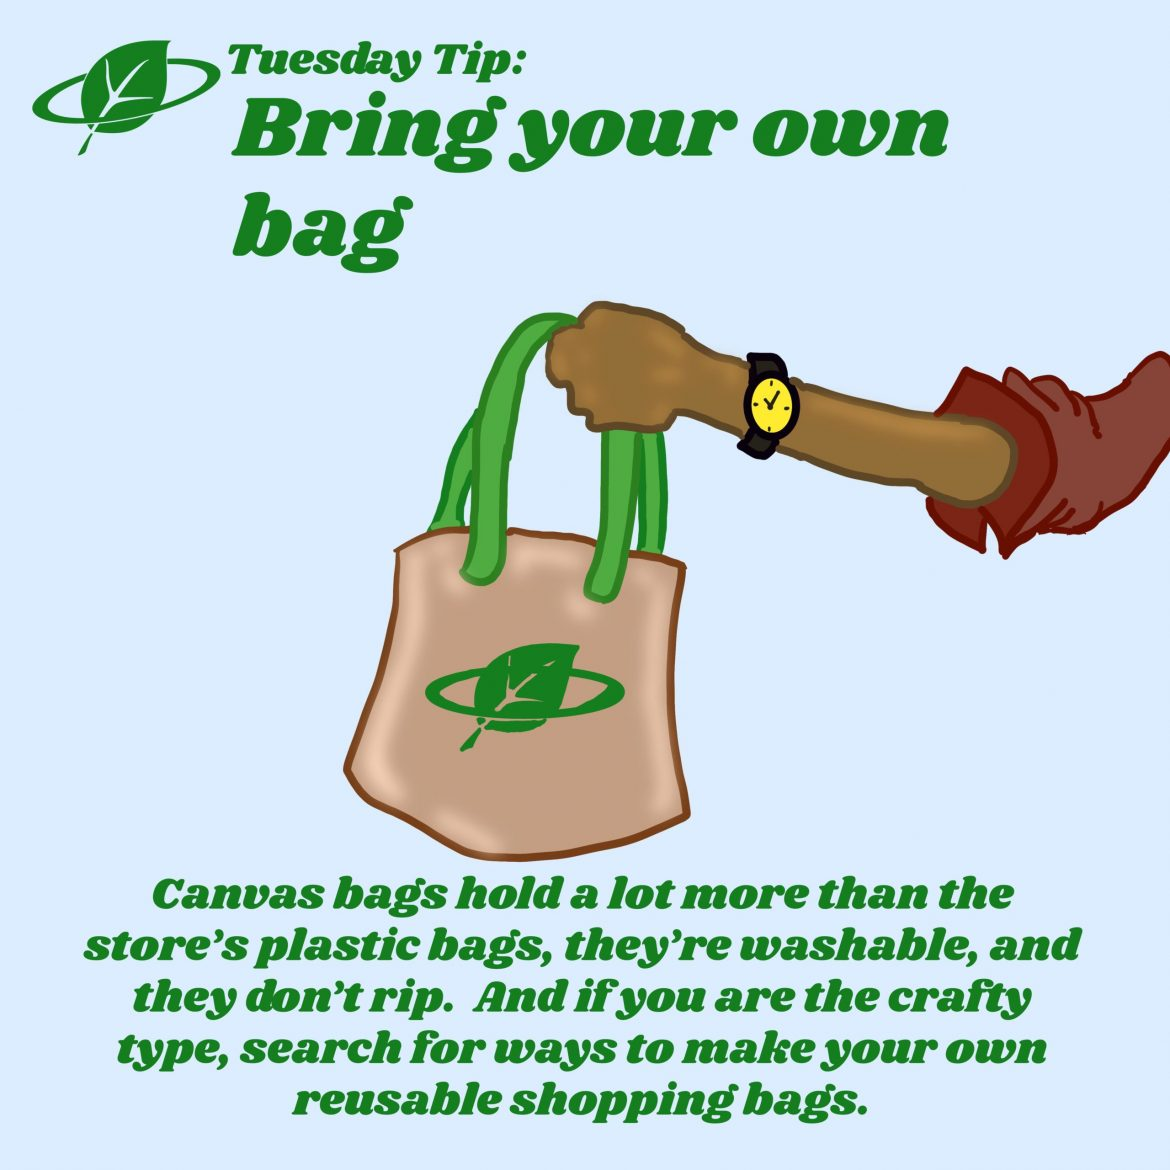 Bring your own bag   Tuesday Tip